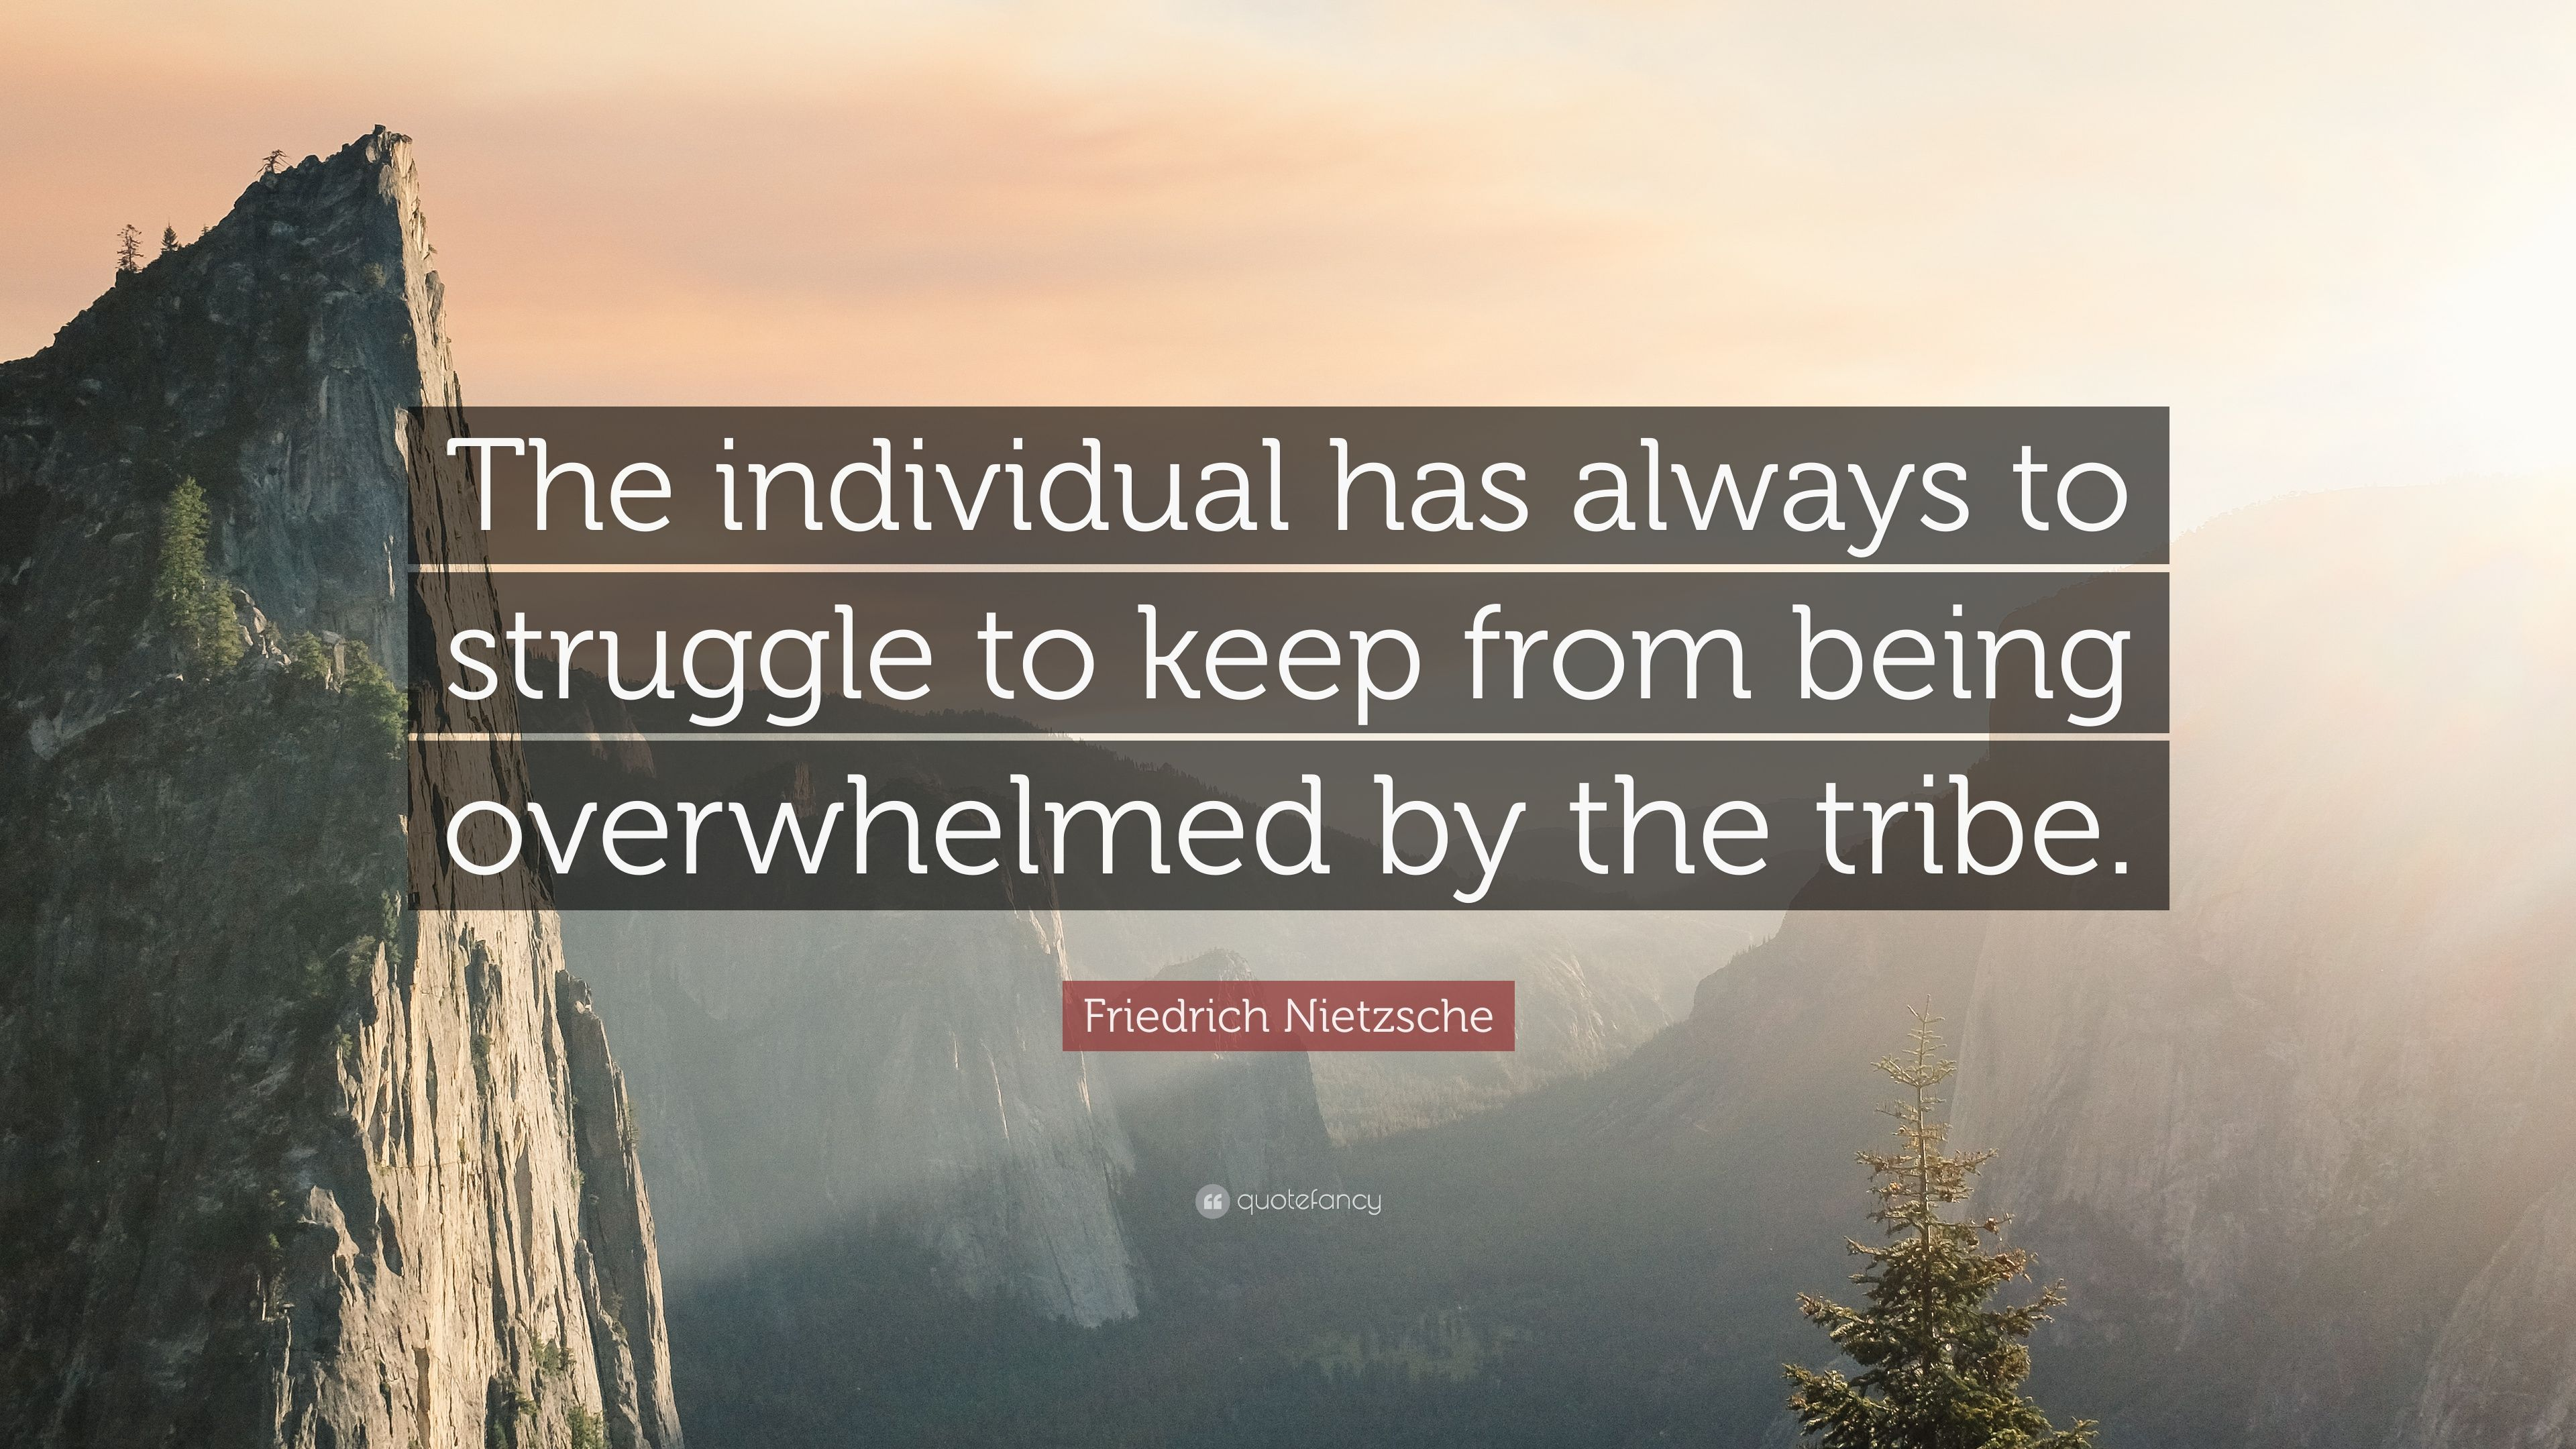 Friedrich Nietzsche Quote The Individual Has Always To Struggle To